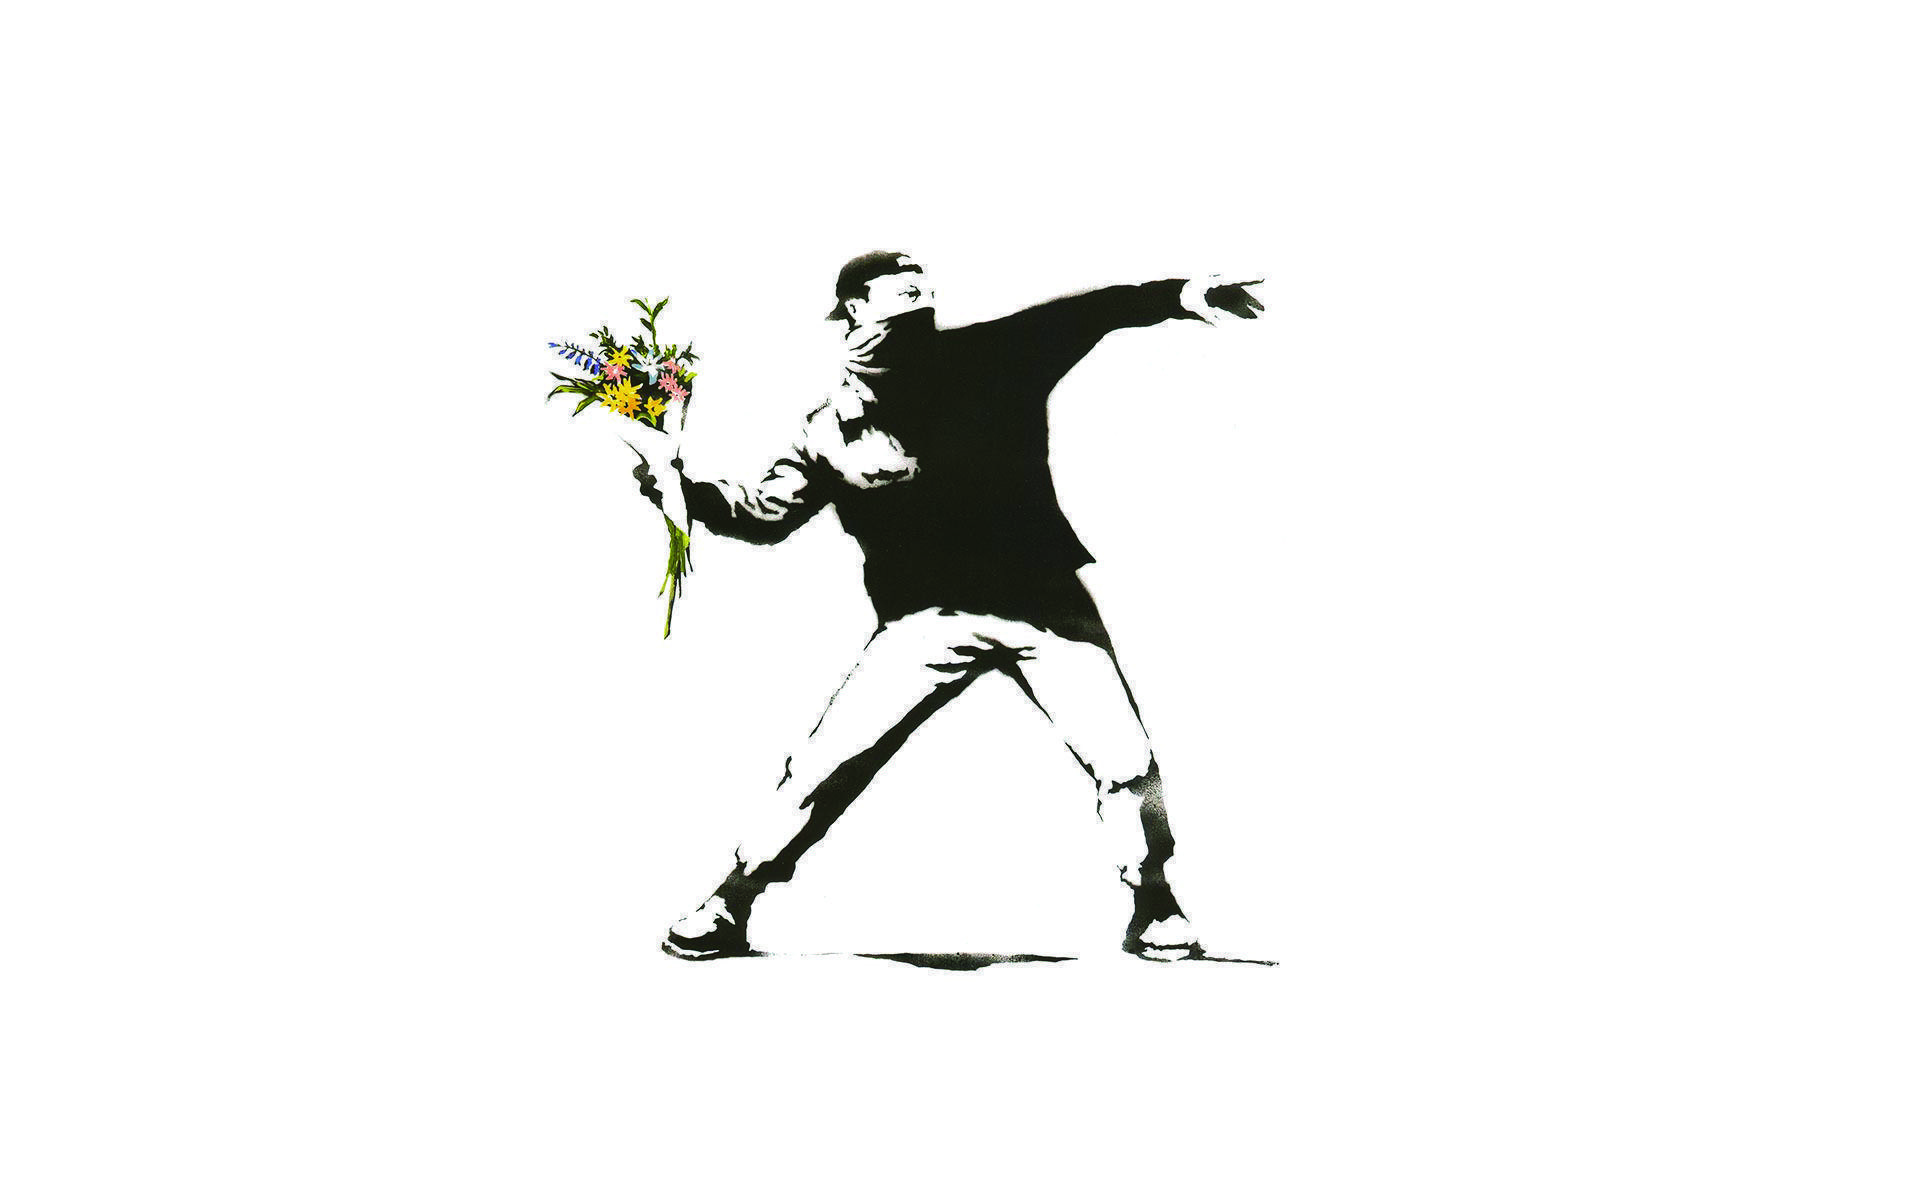 Banksy wallpaper ipad